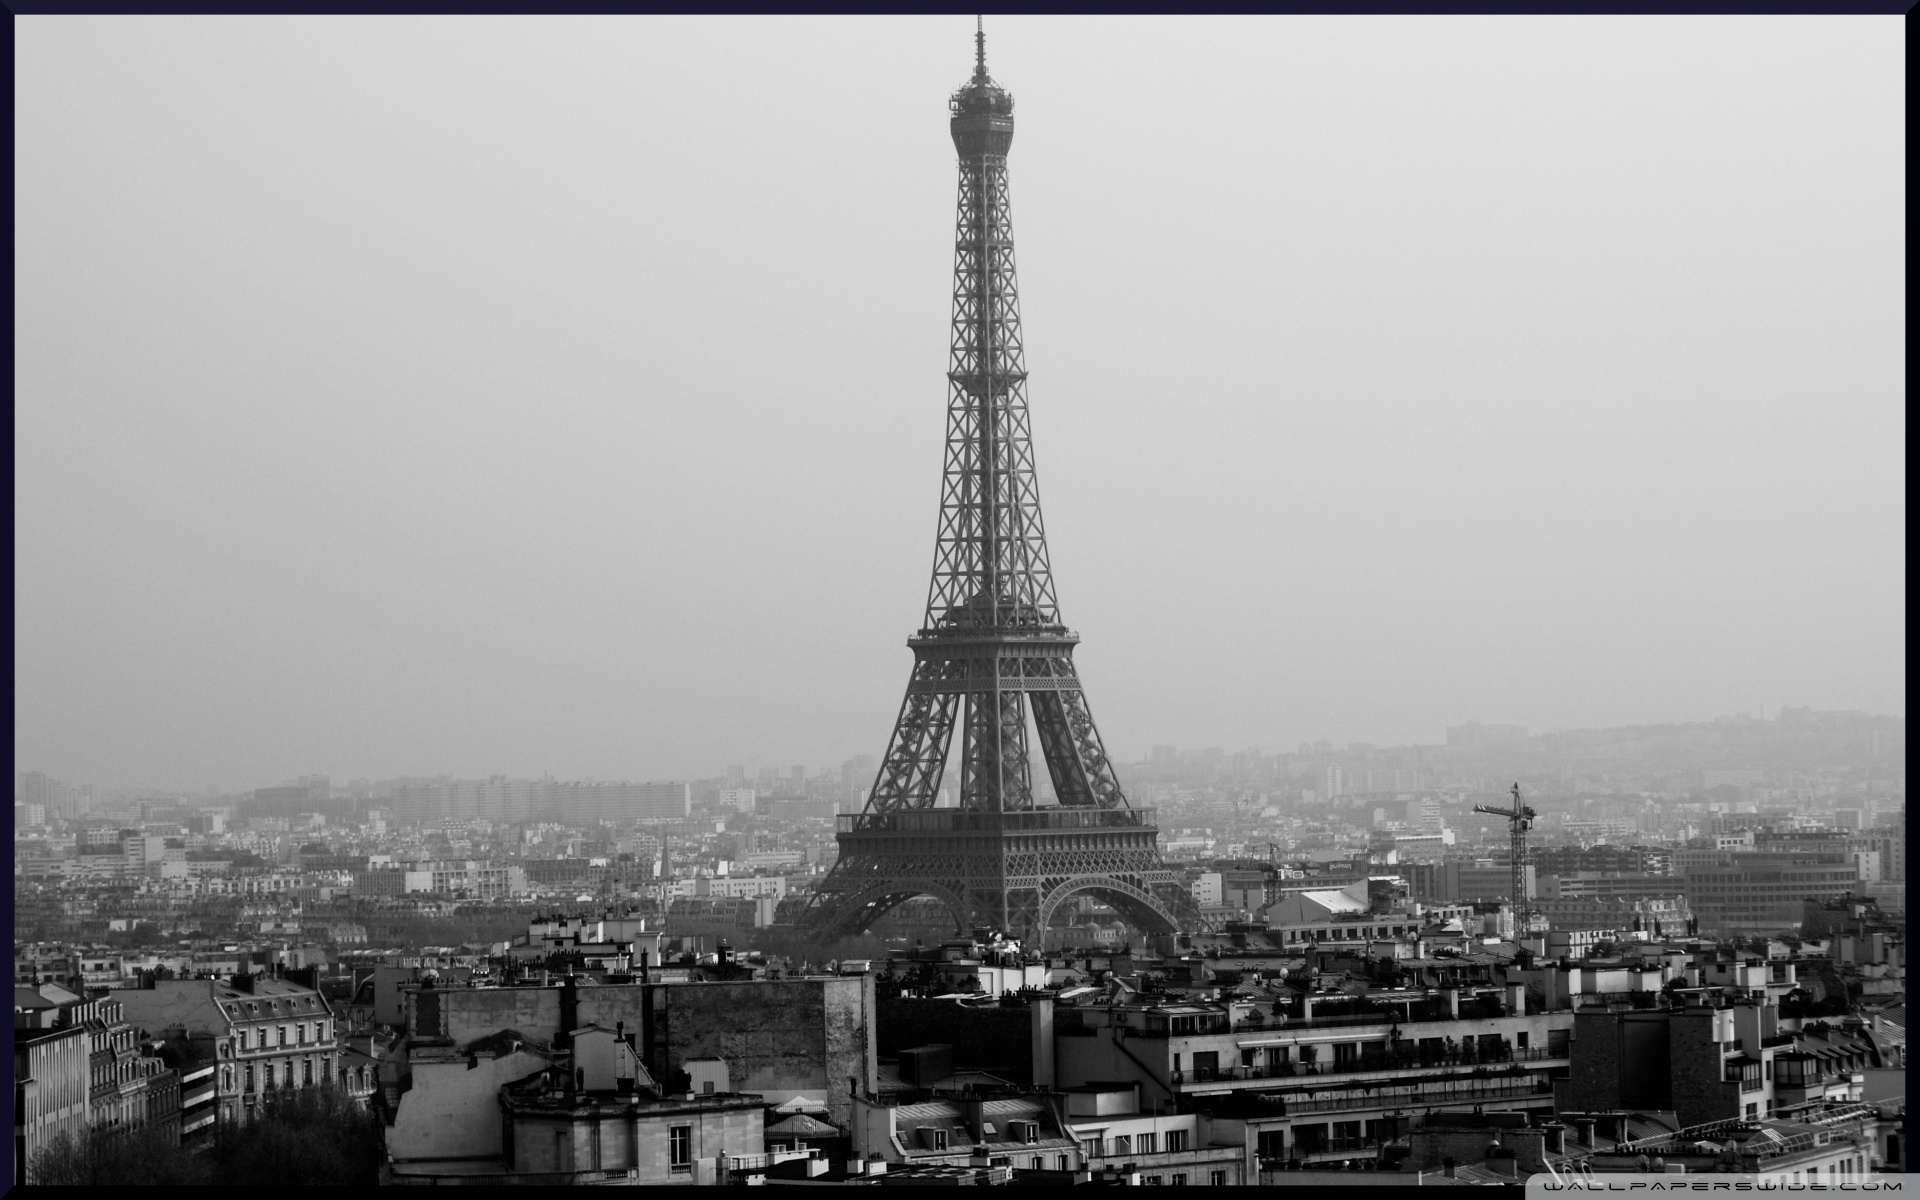 Eiffel Tower and home of the Orgue D'es Ondes and France's first radio station